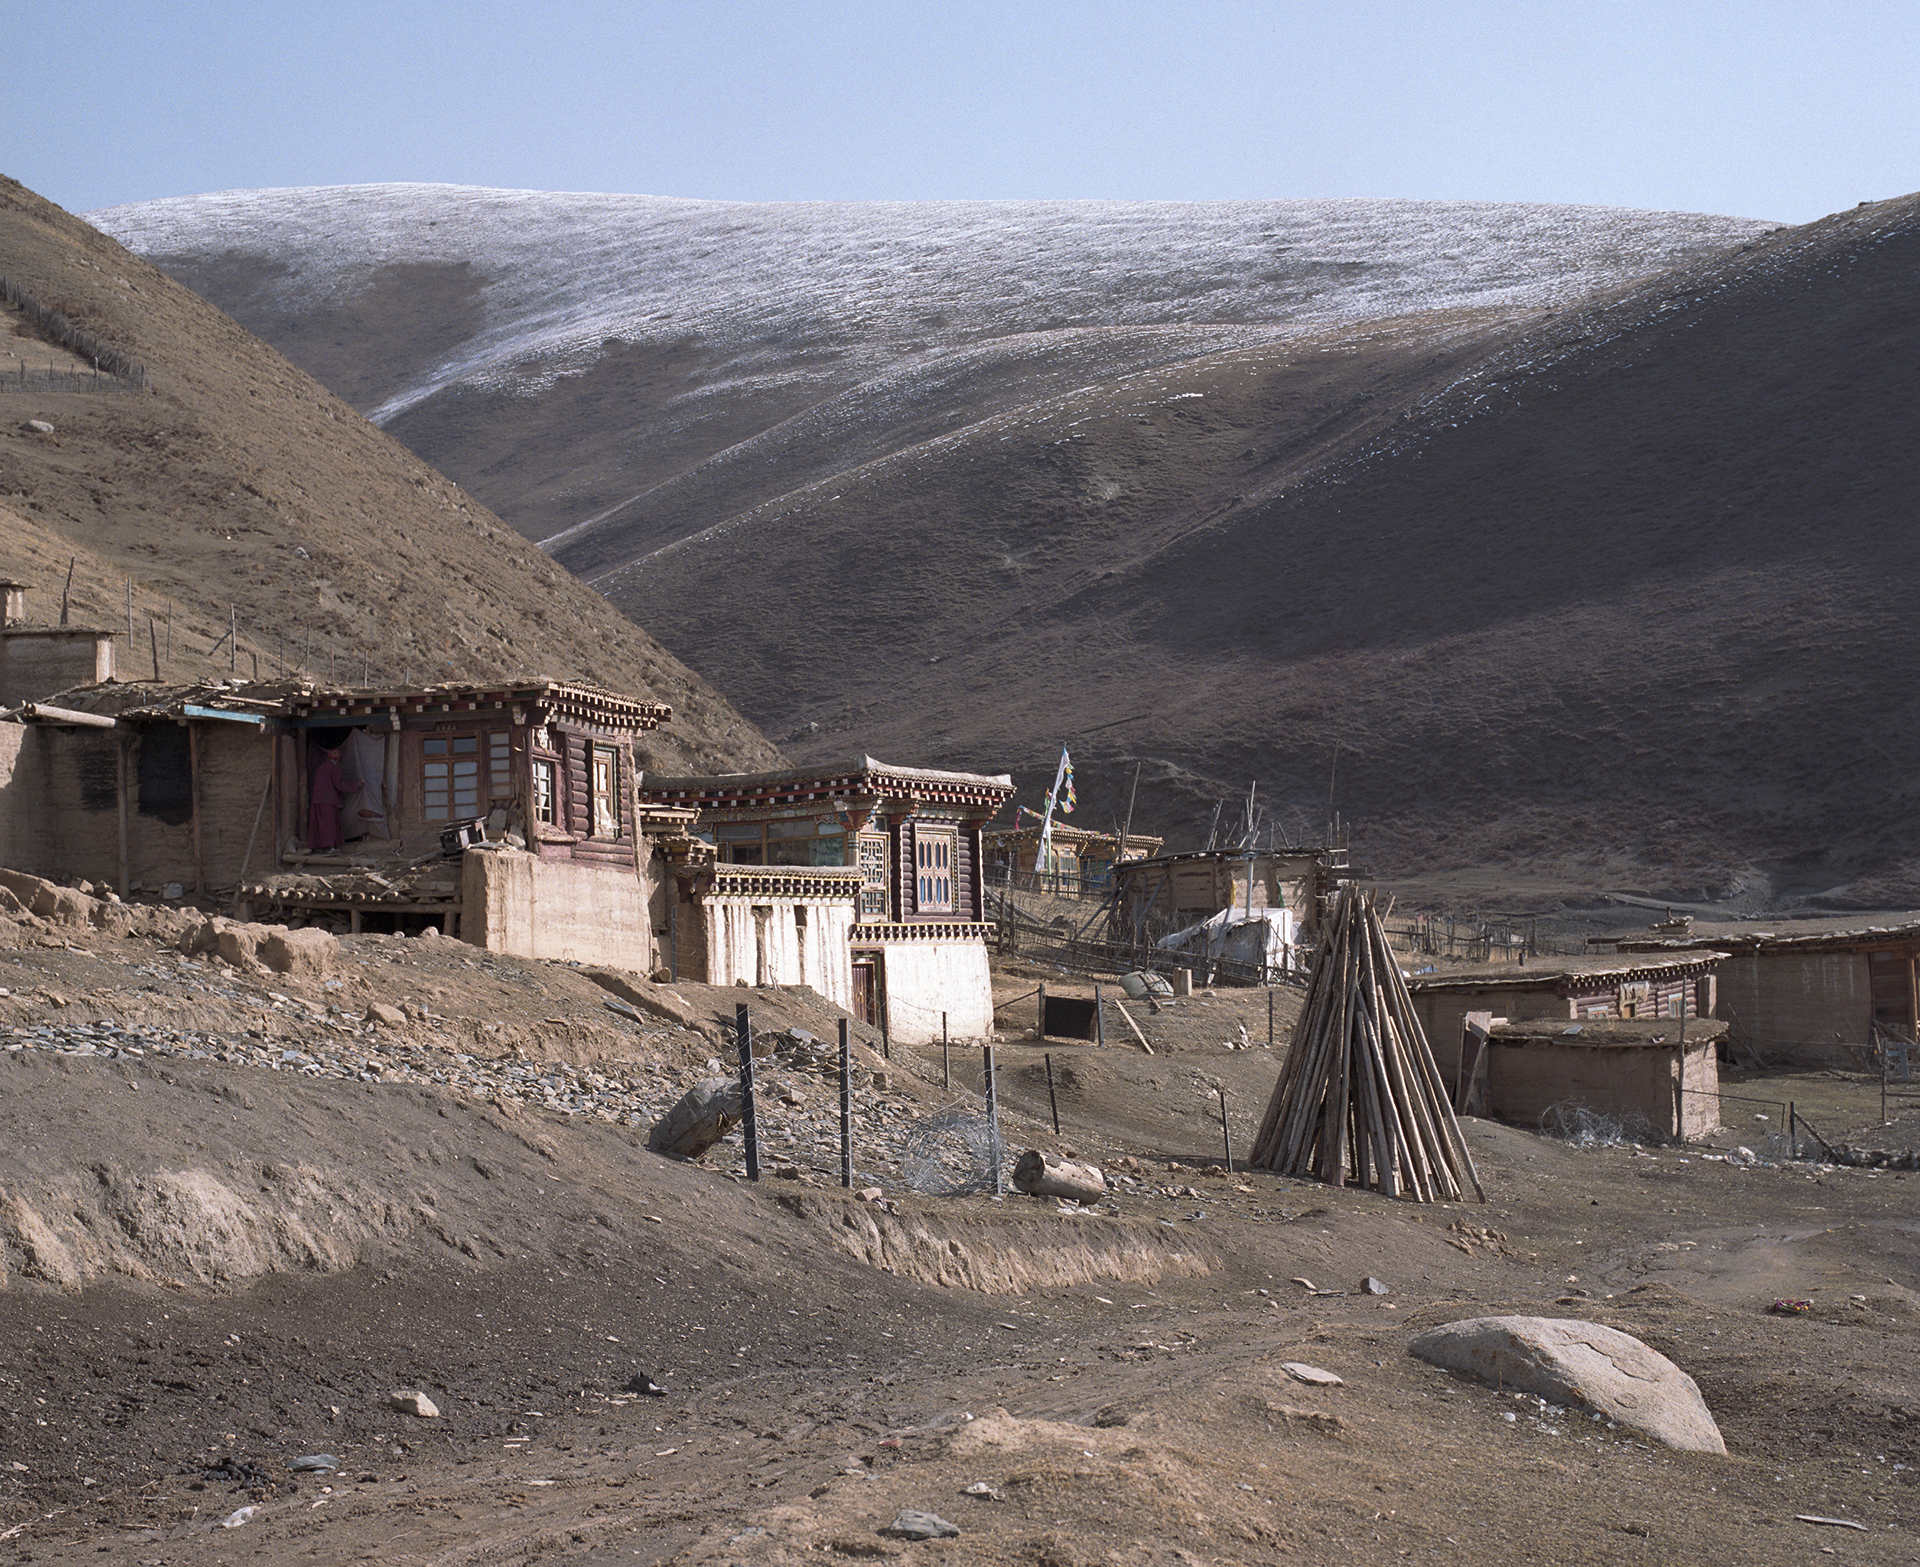 2010, on the plateau - a mountain farm along the road to Ya Chi monastery.